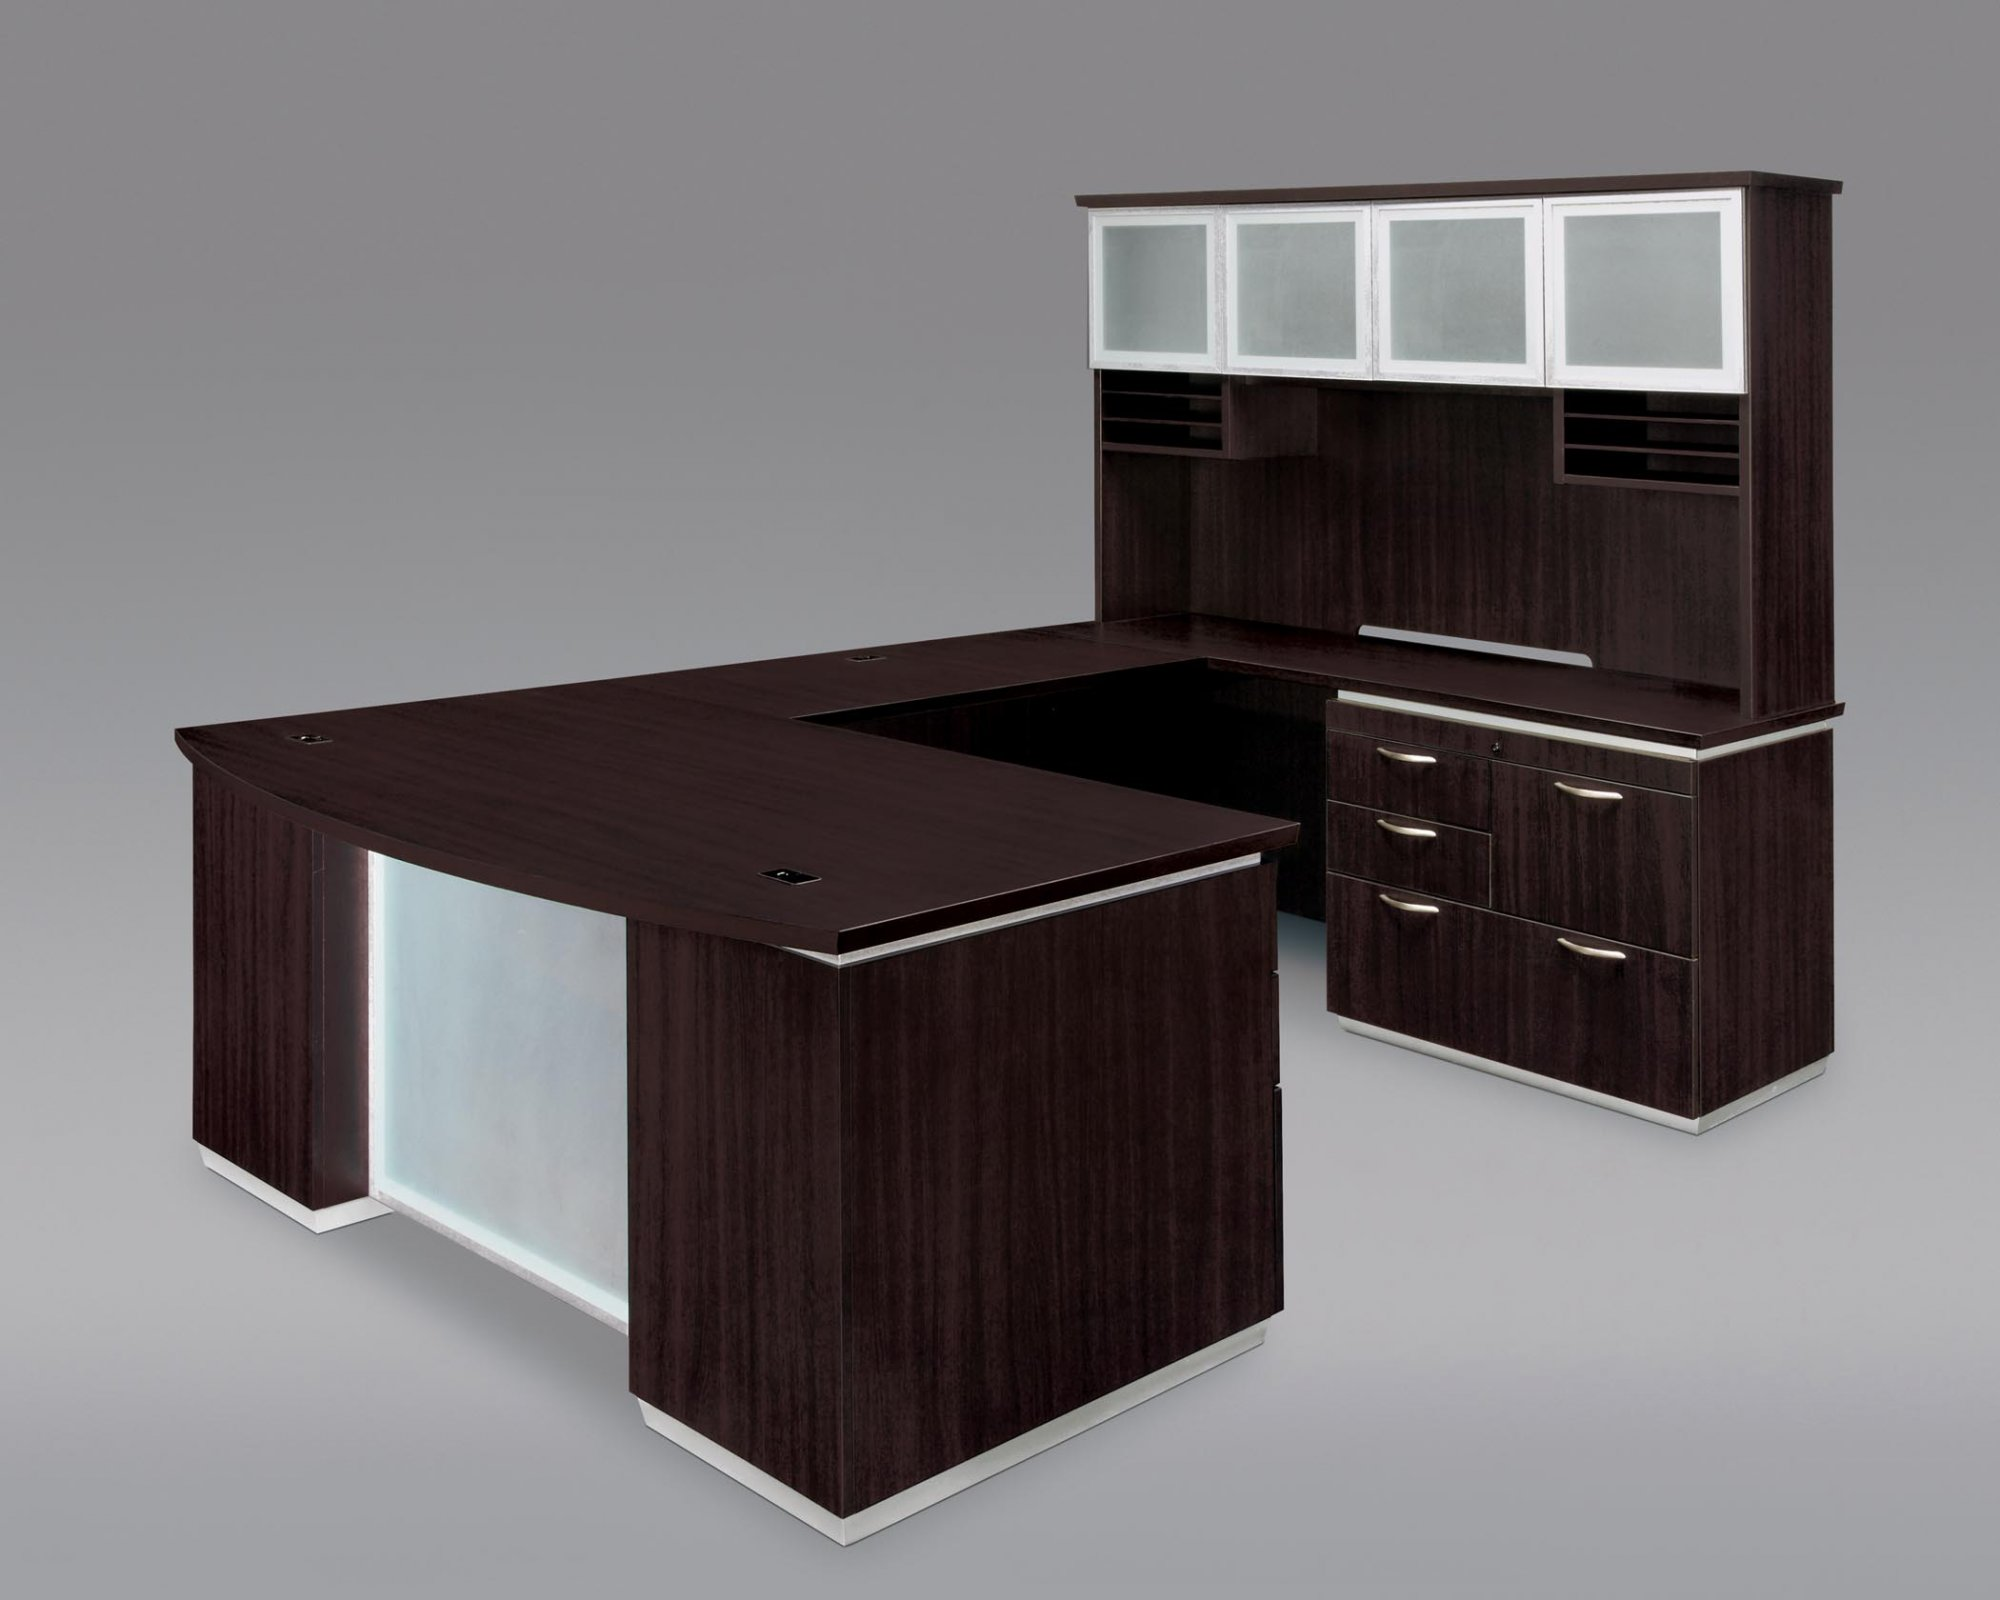 Flexsteel Pimlico  Right Personal File Bow Front U Desk with Frosted Glass Modesty Panel